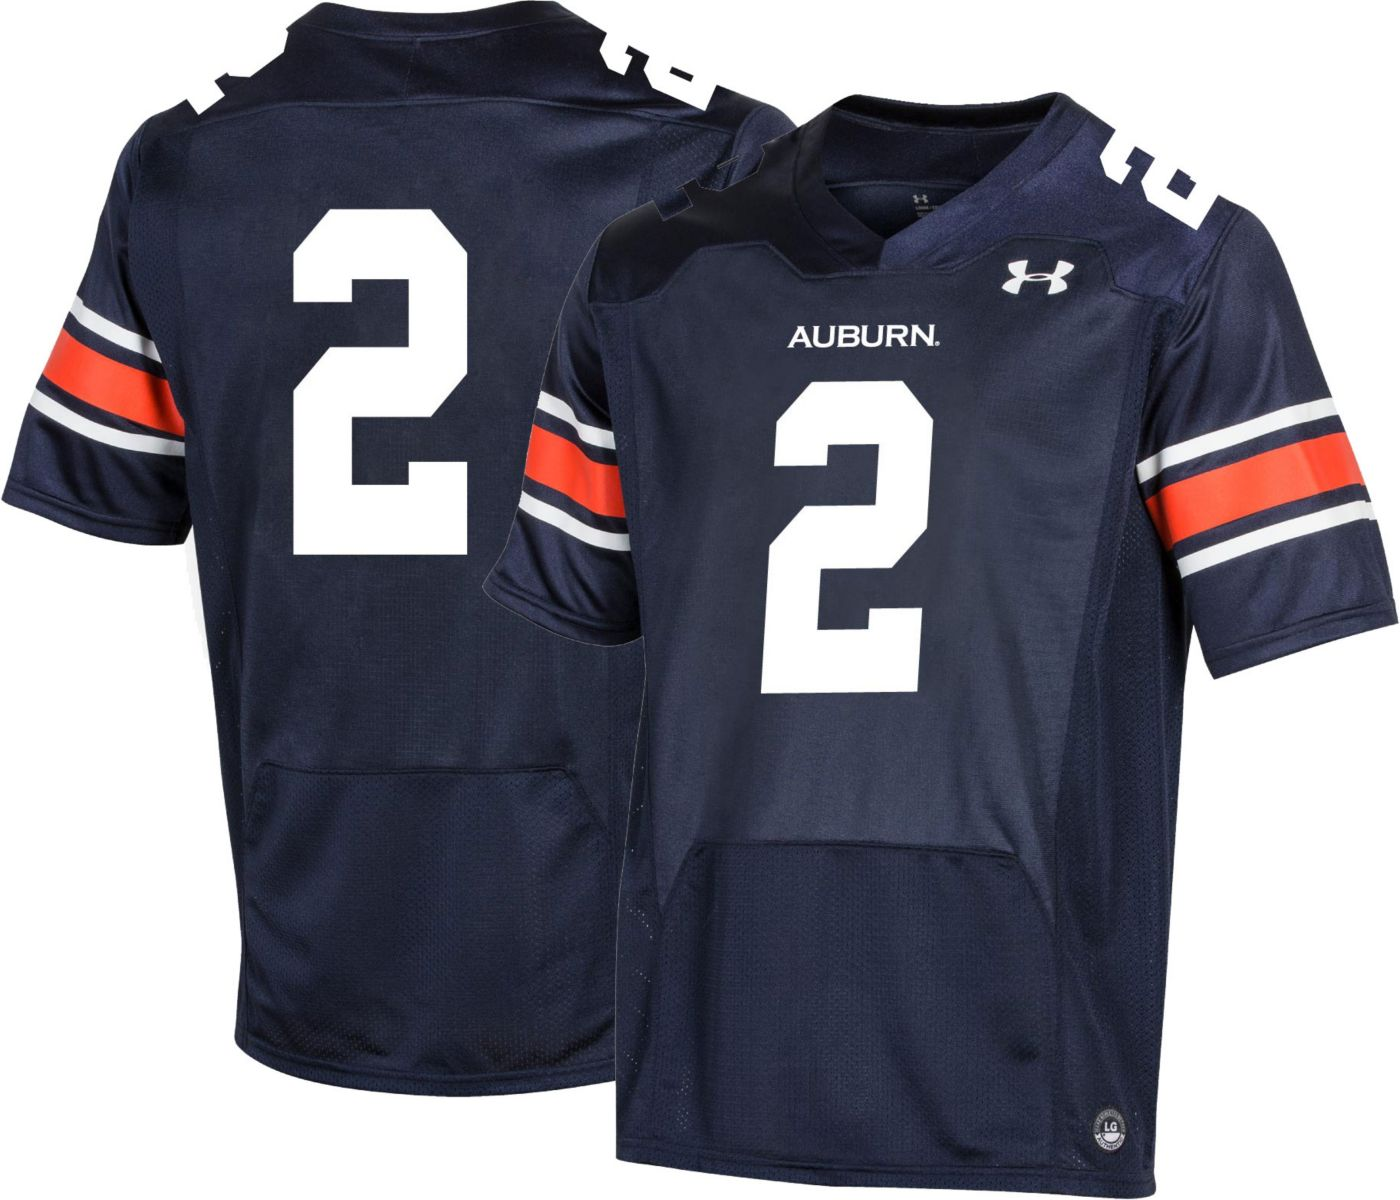 Under Armour Men's Auburn Tigers #2 Blue Replica Football Jersey